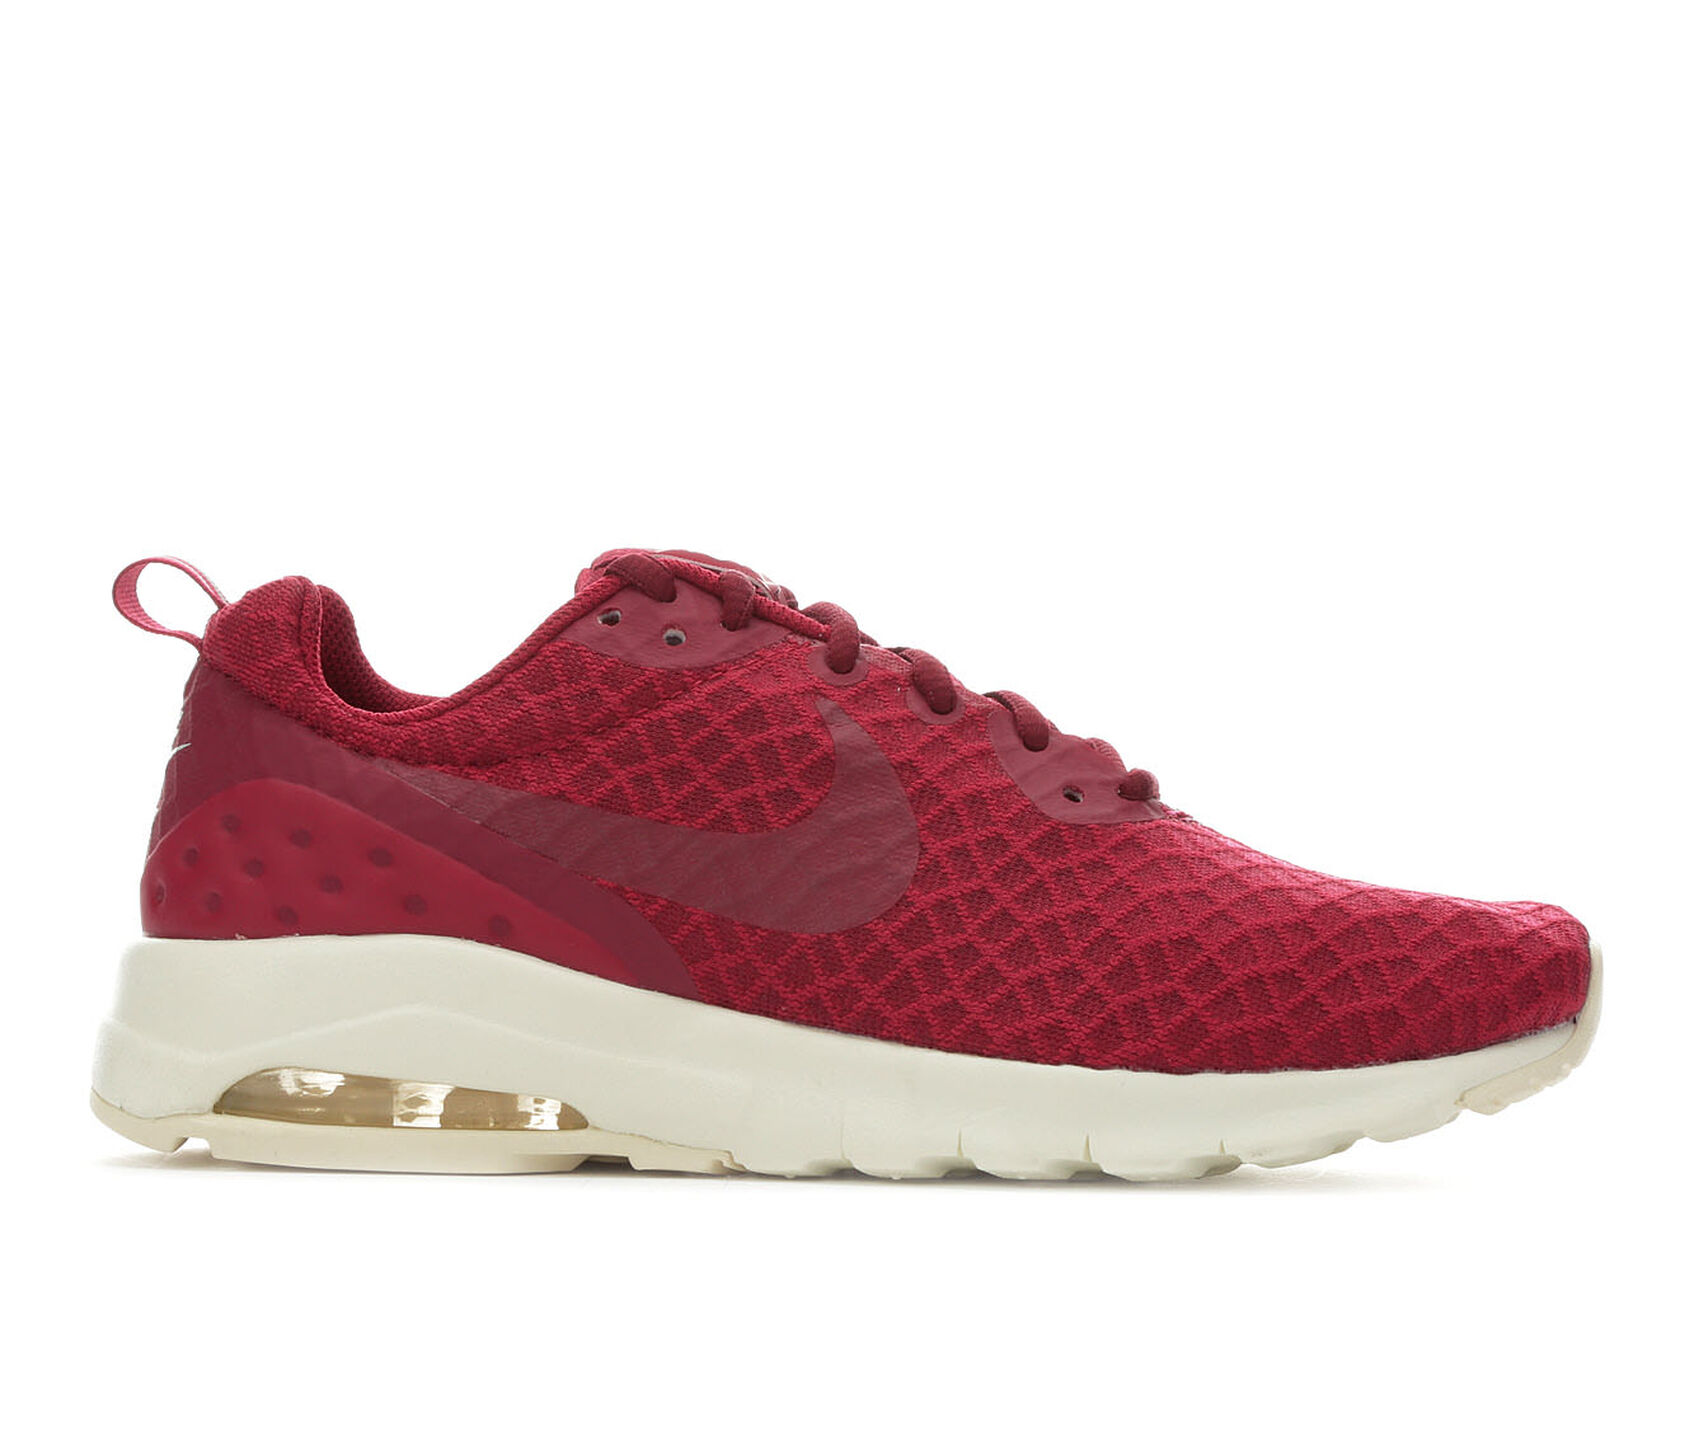 ee6235c9a9 Women's Nike Air Max Motion Low SE Sneakers | Shoe Carnival